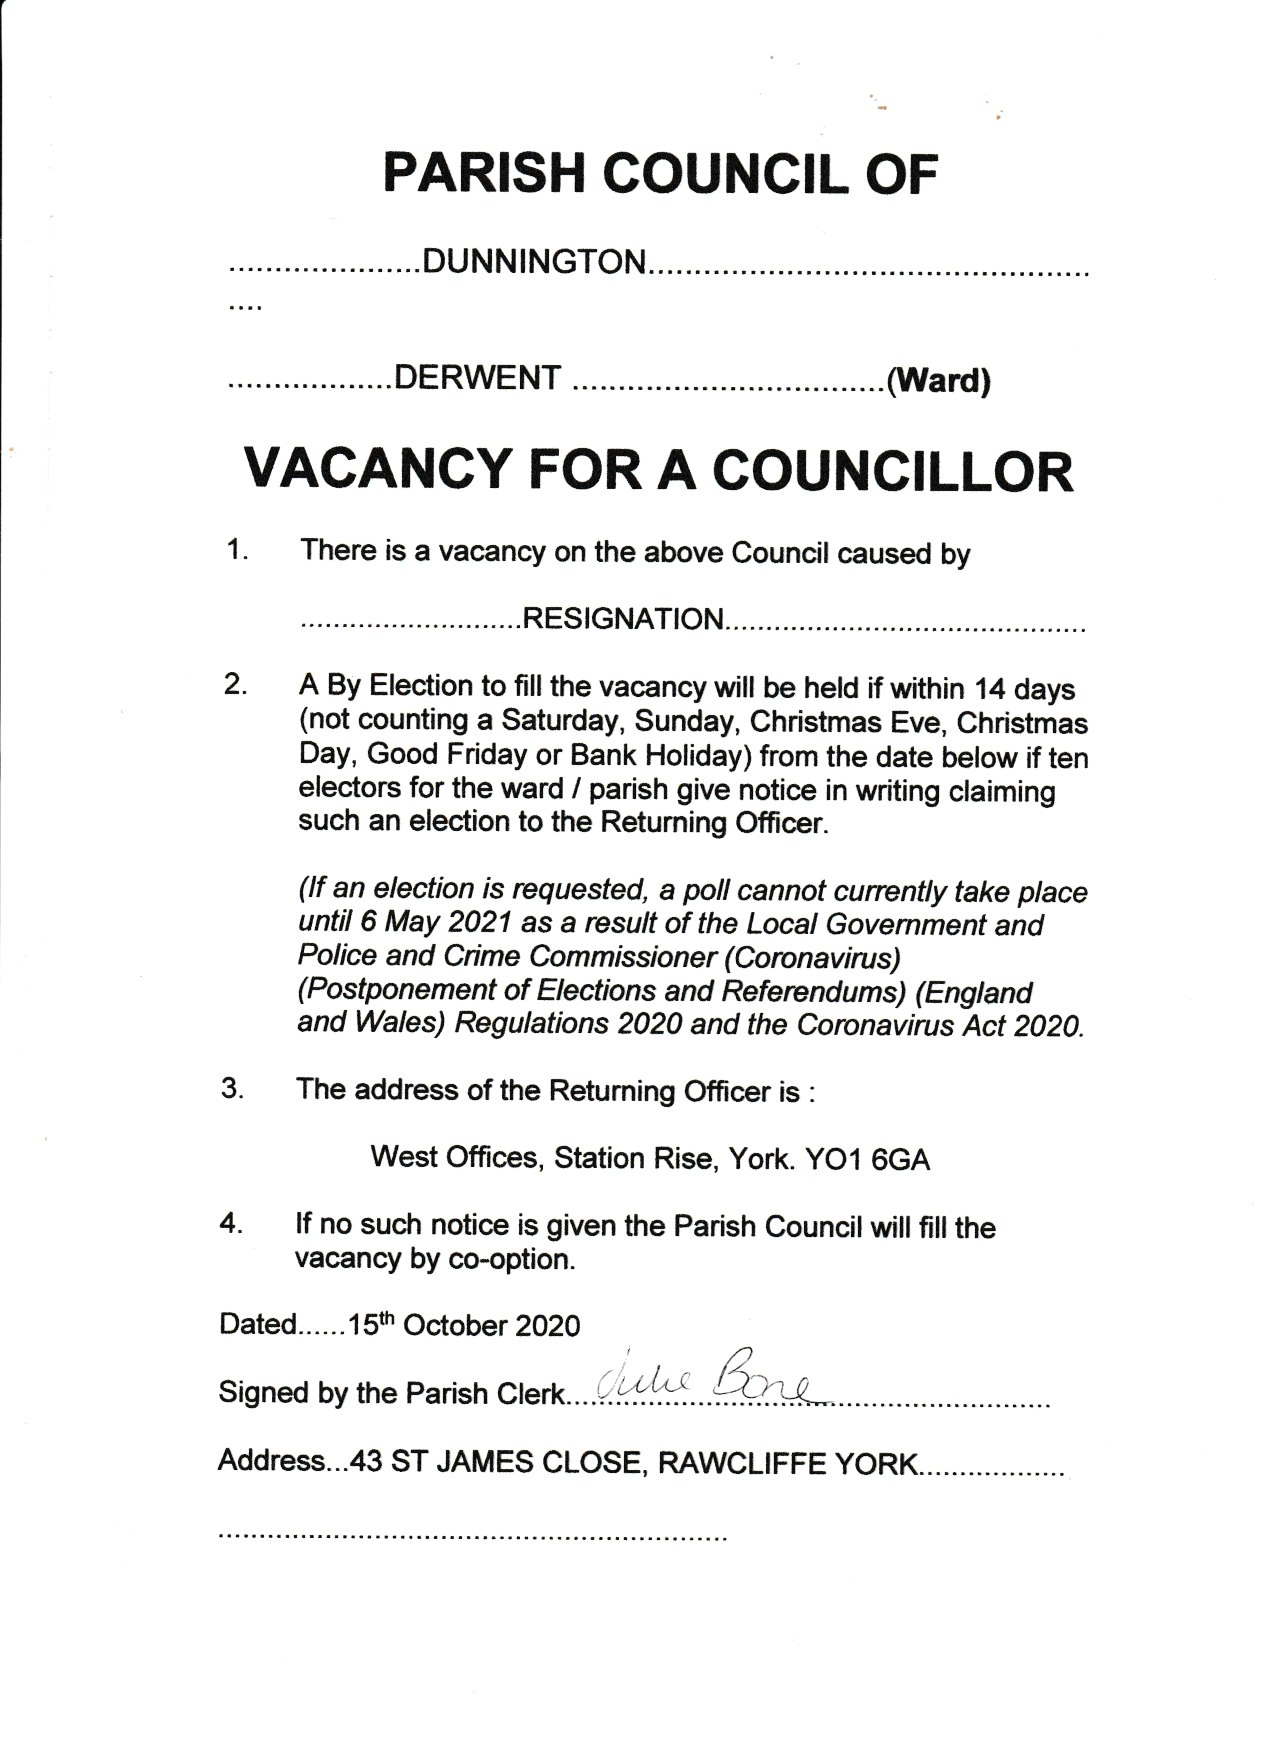 Dunnington Parish Council   Vacancy Notice 15 10 20